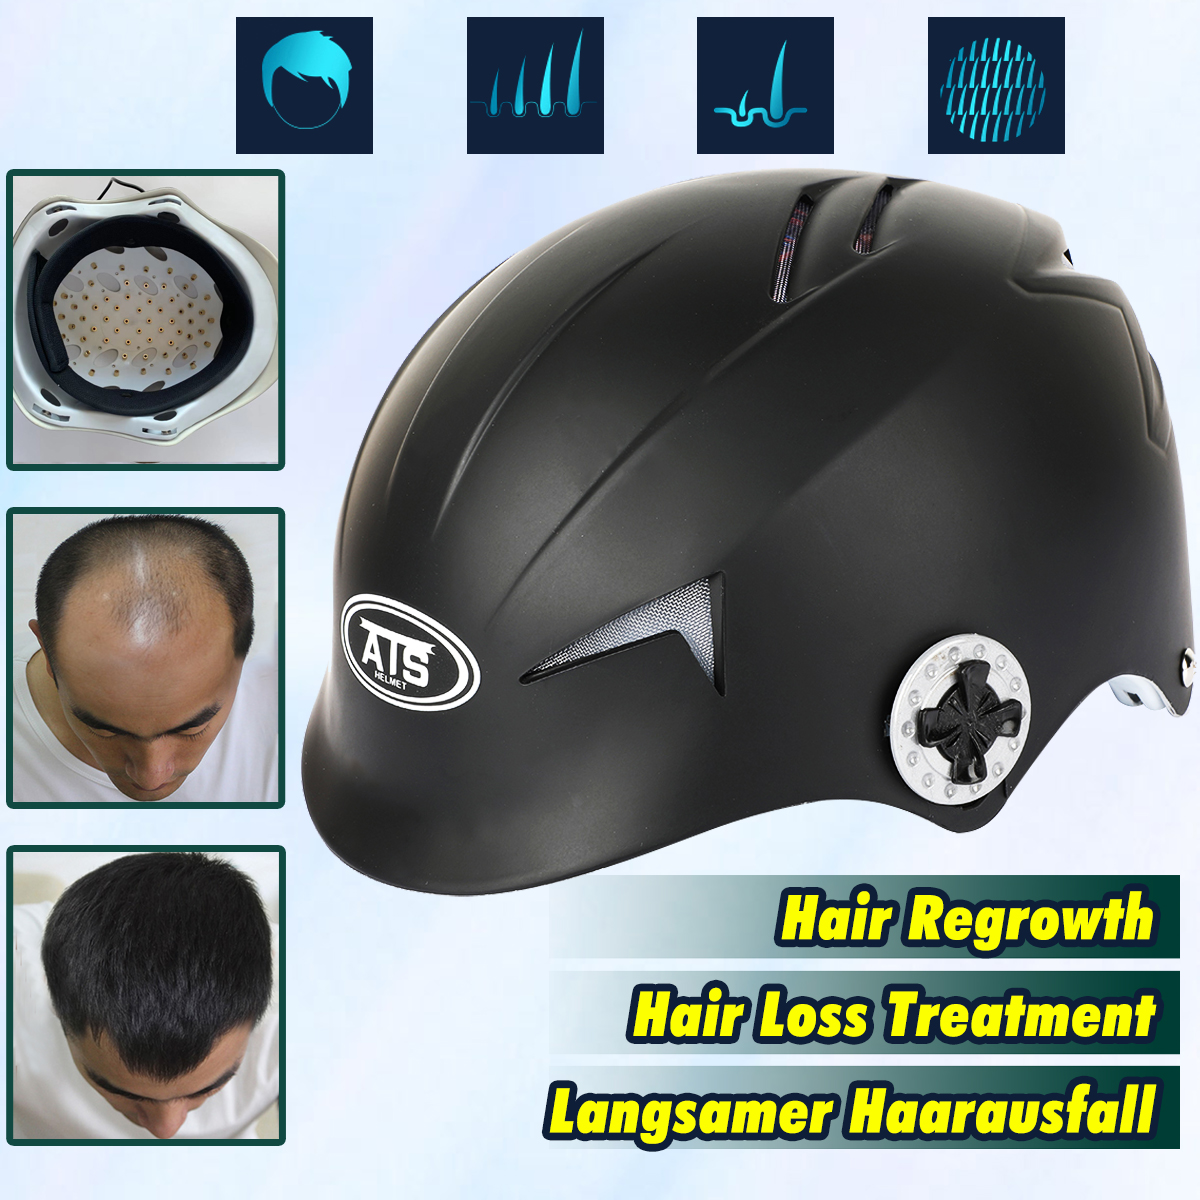 64 /128 Diodes Laser Hair Growth Cap Hair Loss Treatment Hair Regrowth Promoter Regrow Laser Helmet Fast Treatment Hat